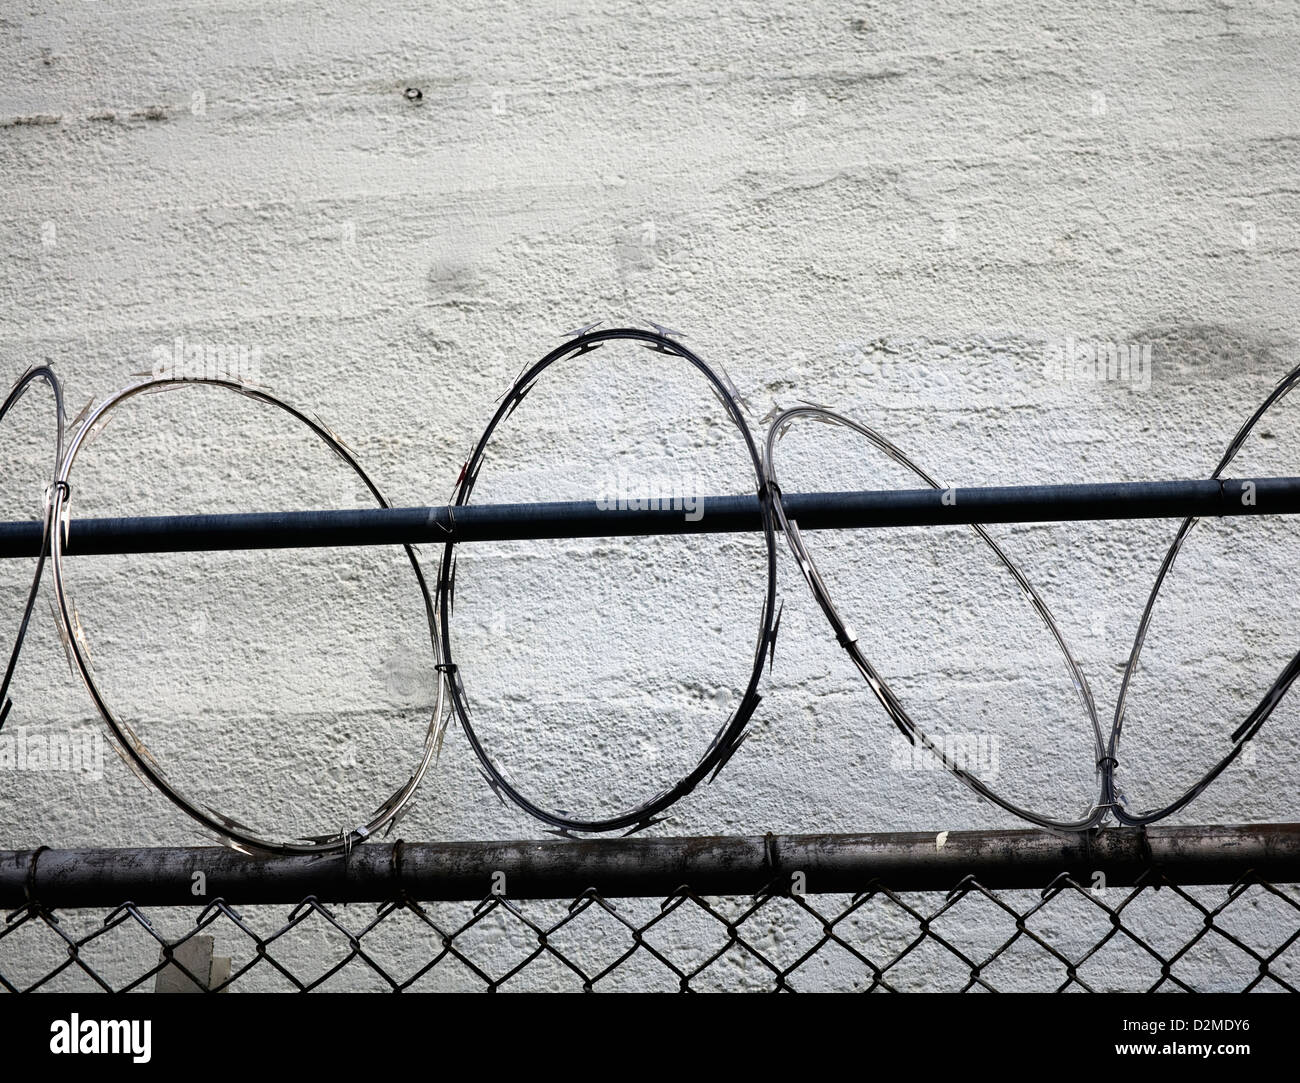 Cute Razor Wire Damage Photos - Wiring Diagram Ideas - blogitia.com